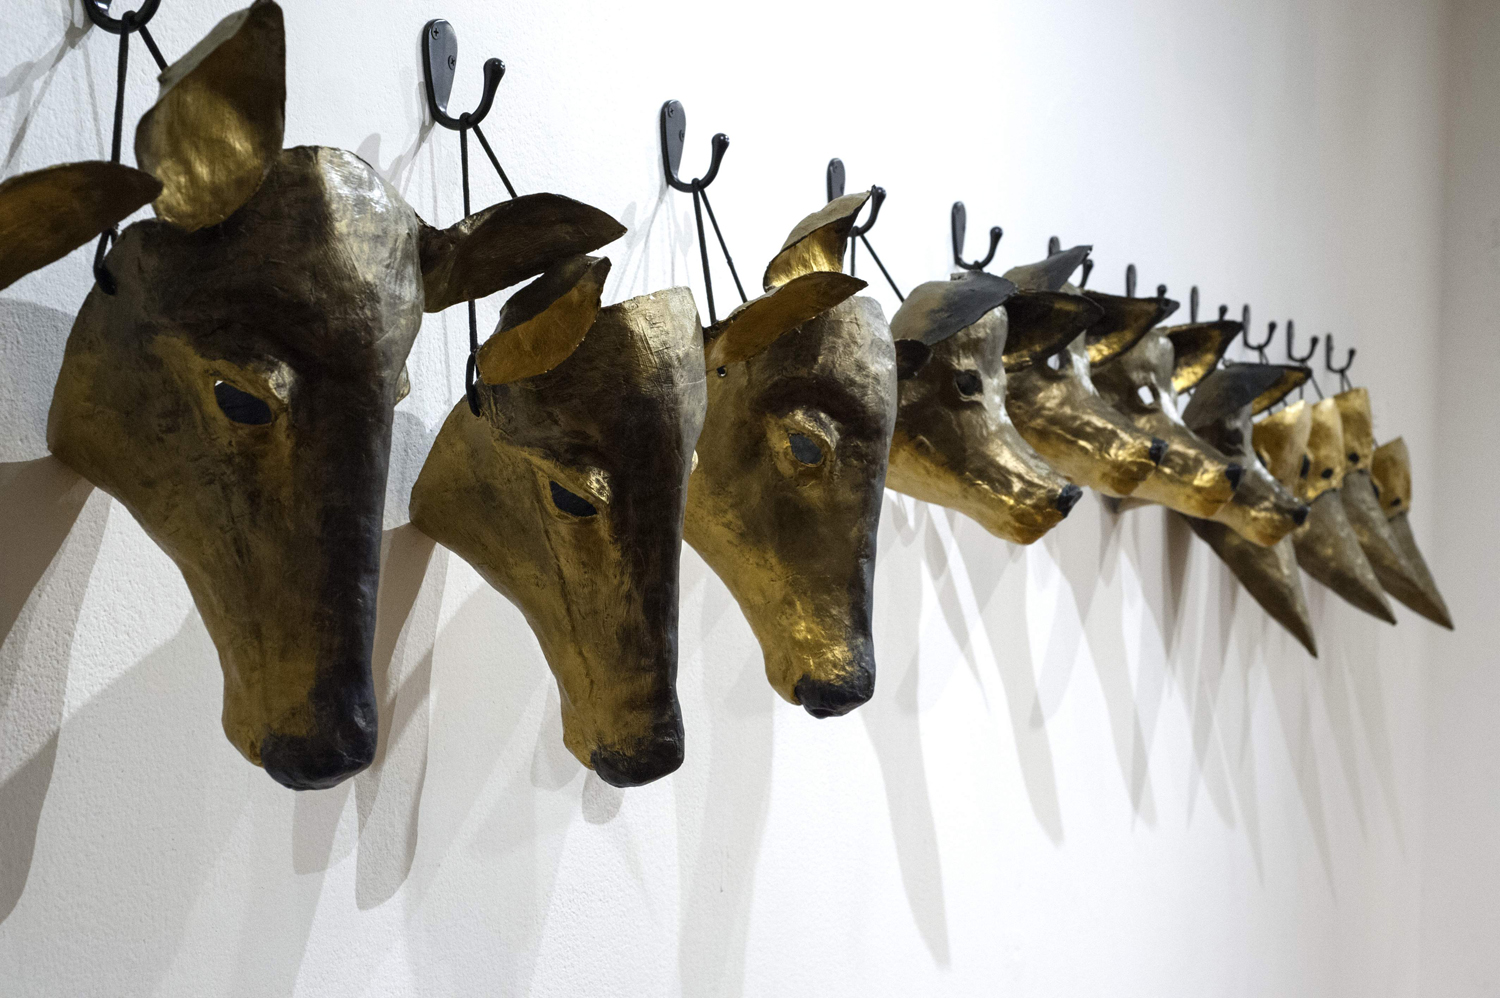 Visitors were encouraged to wear these animal masks while viewing sculpture